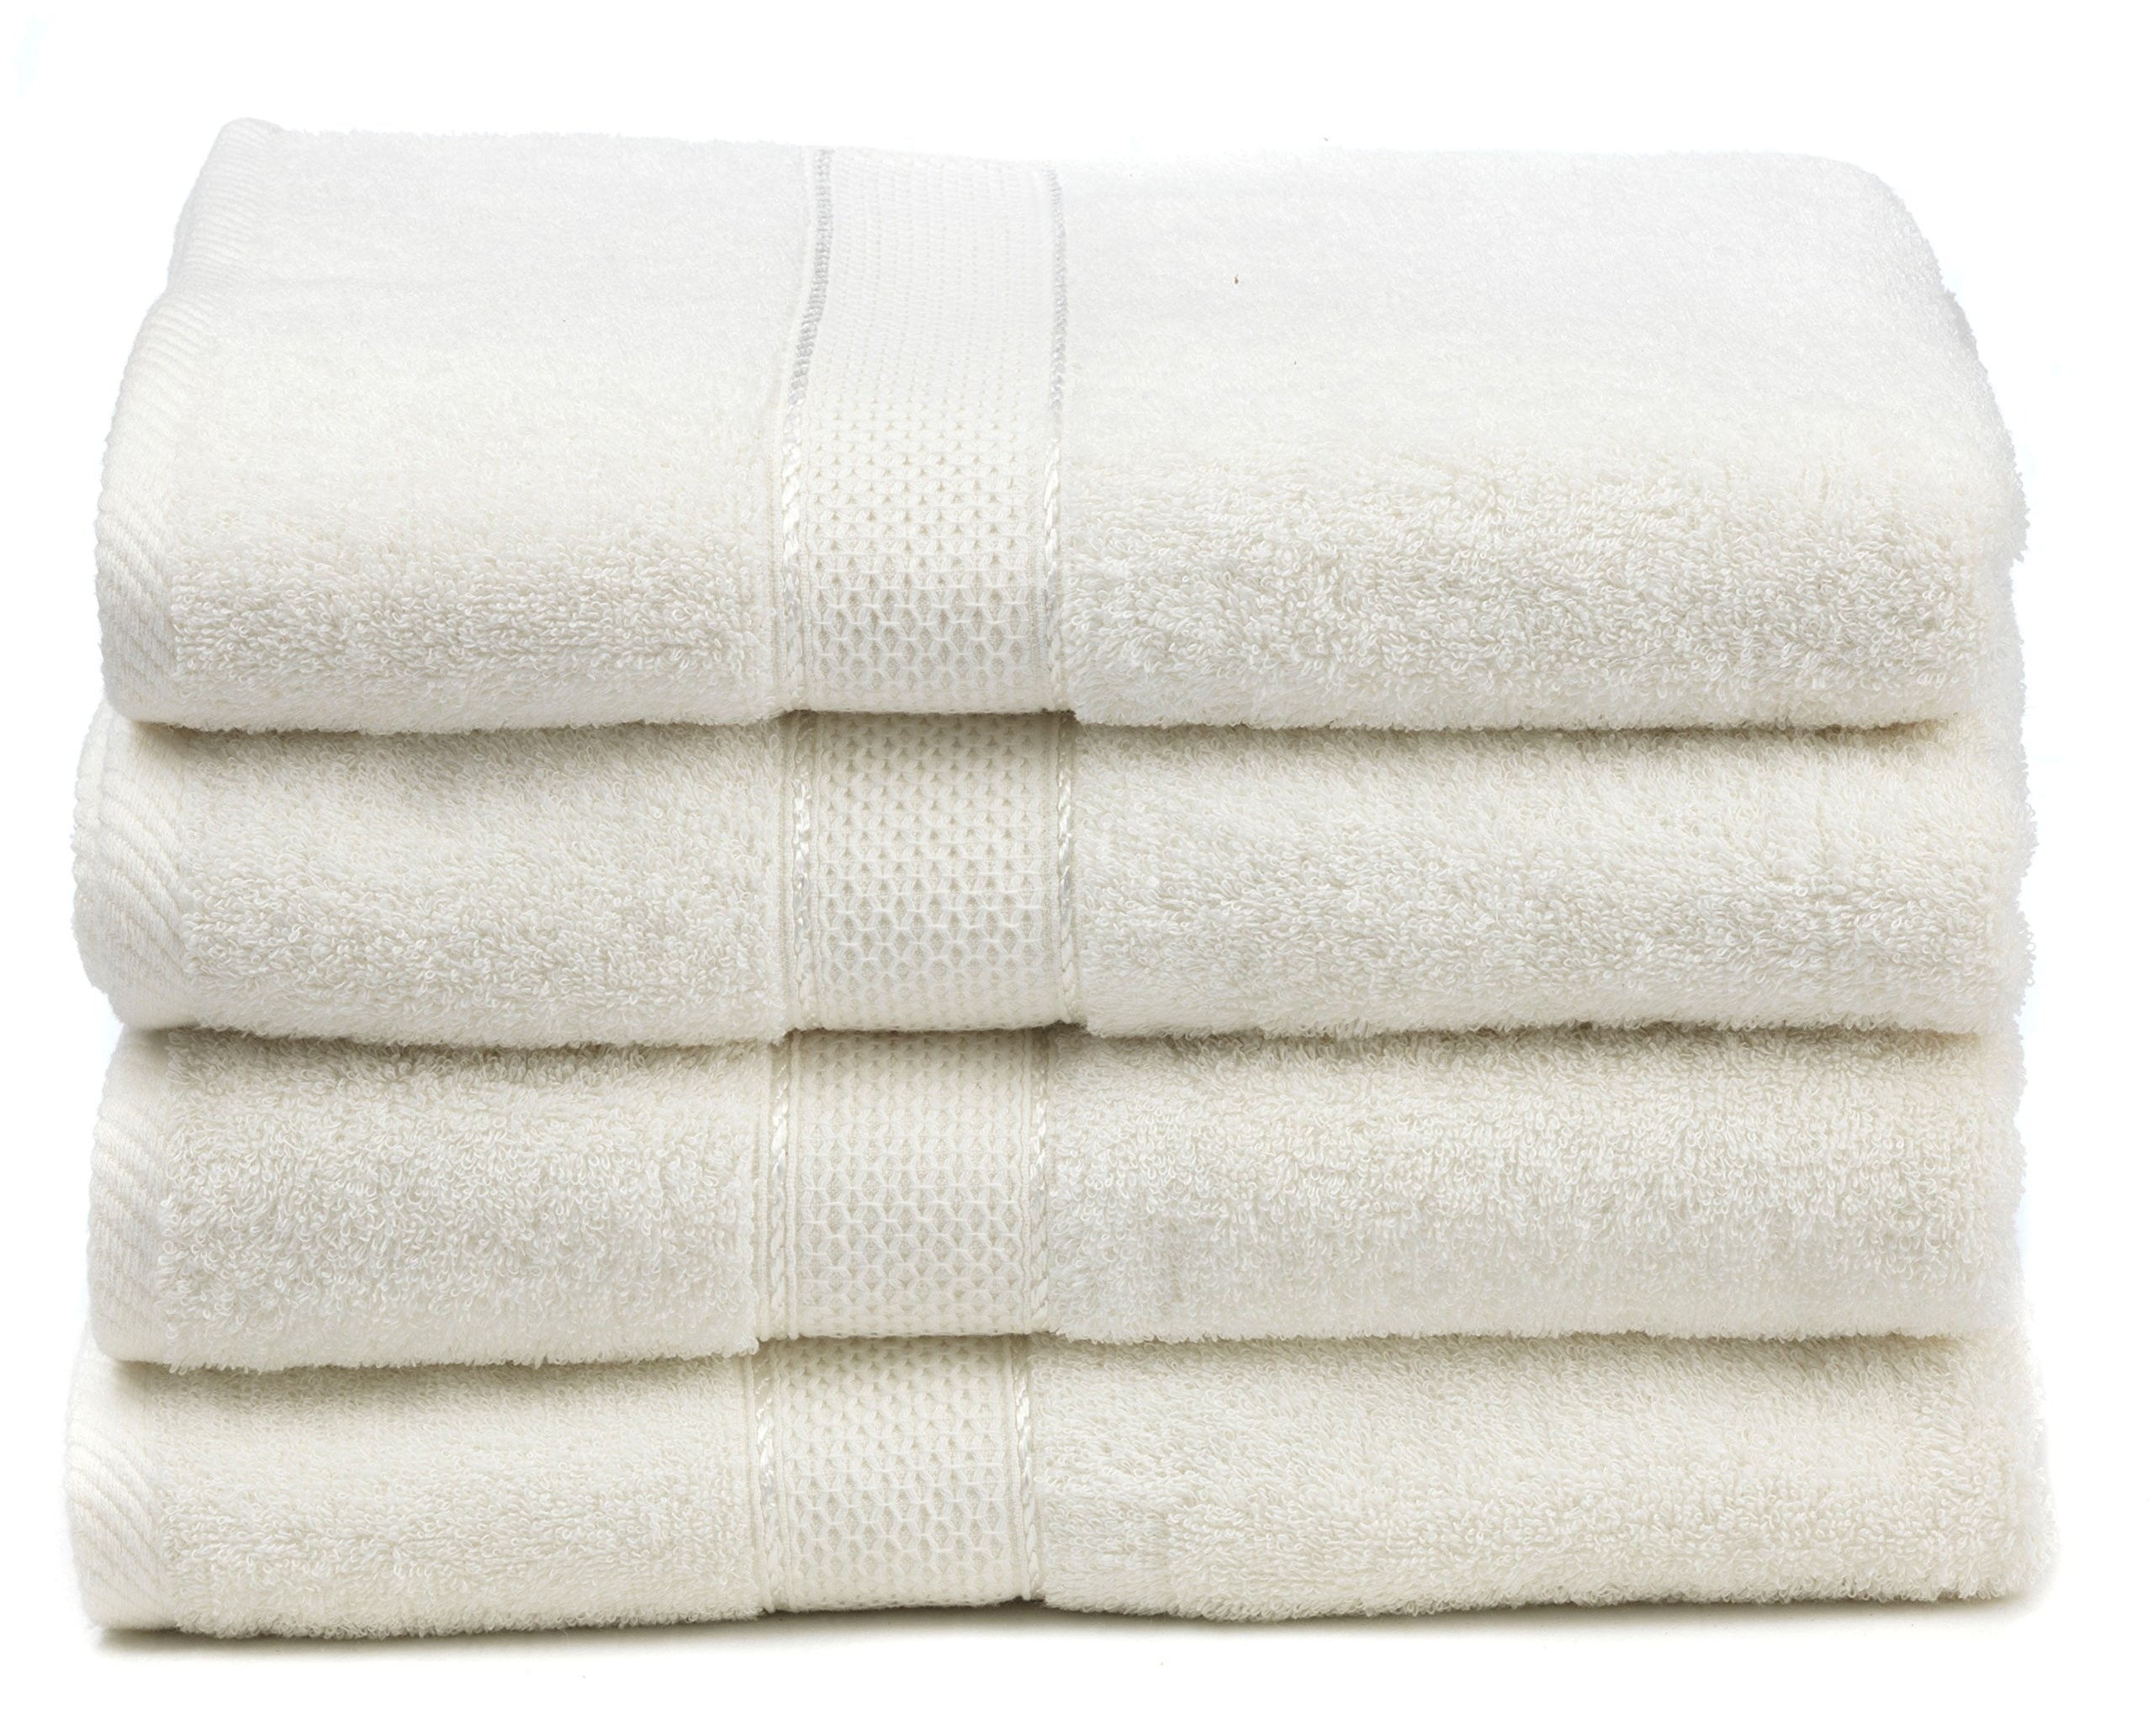 Ariv Collection Premium Bamboo Cotton Bath Towels – Natural, Ultra Absorbent and Eco-Friendly 30″ X 52″ (Duck Egg)